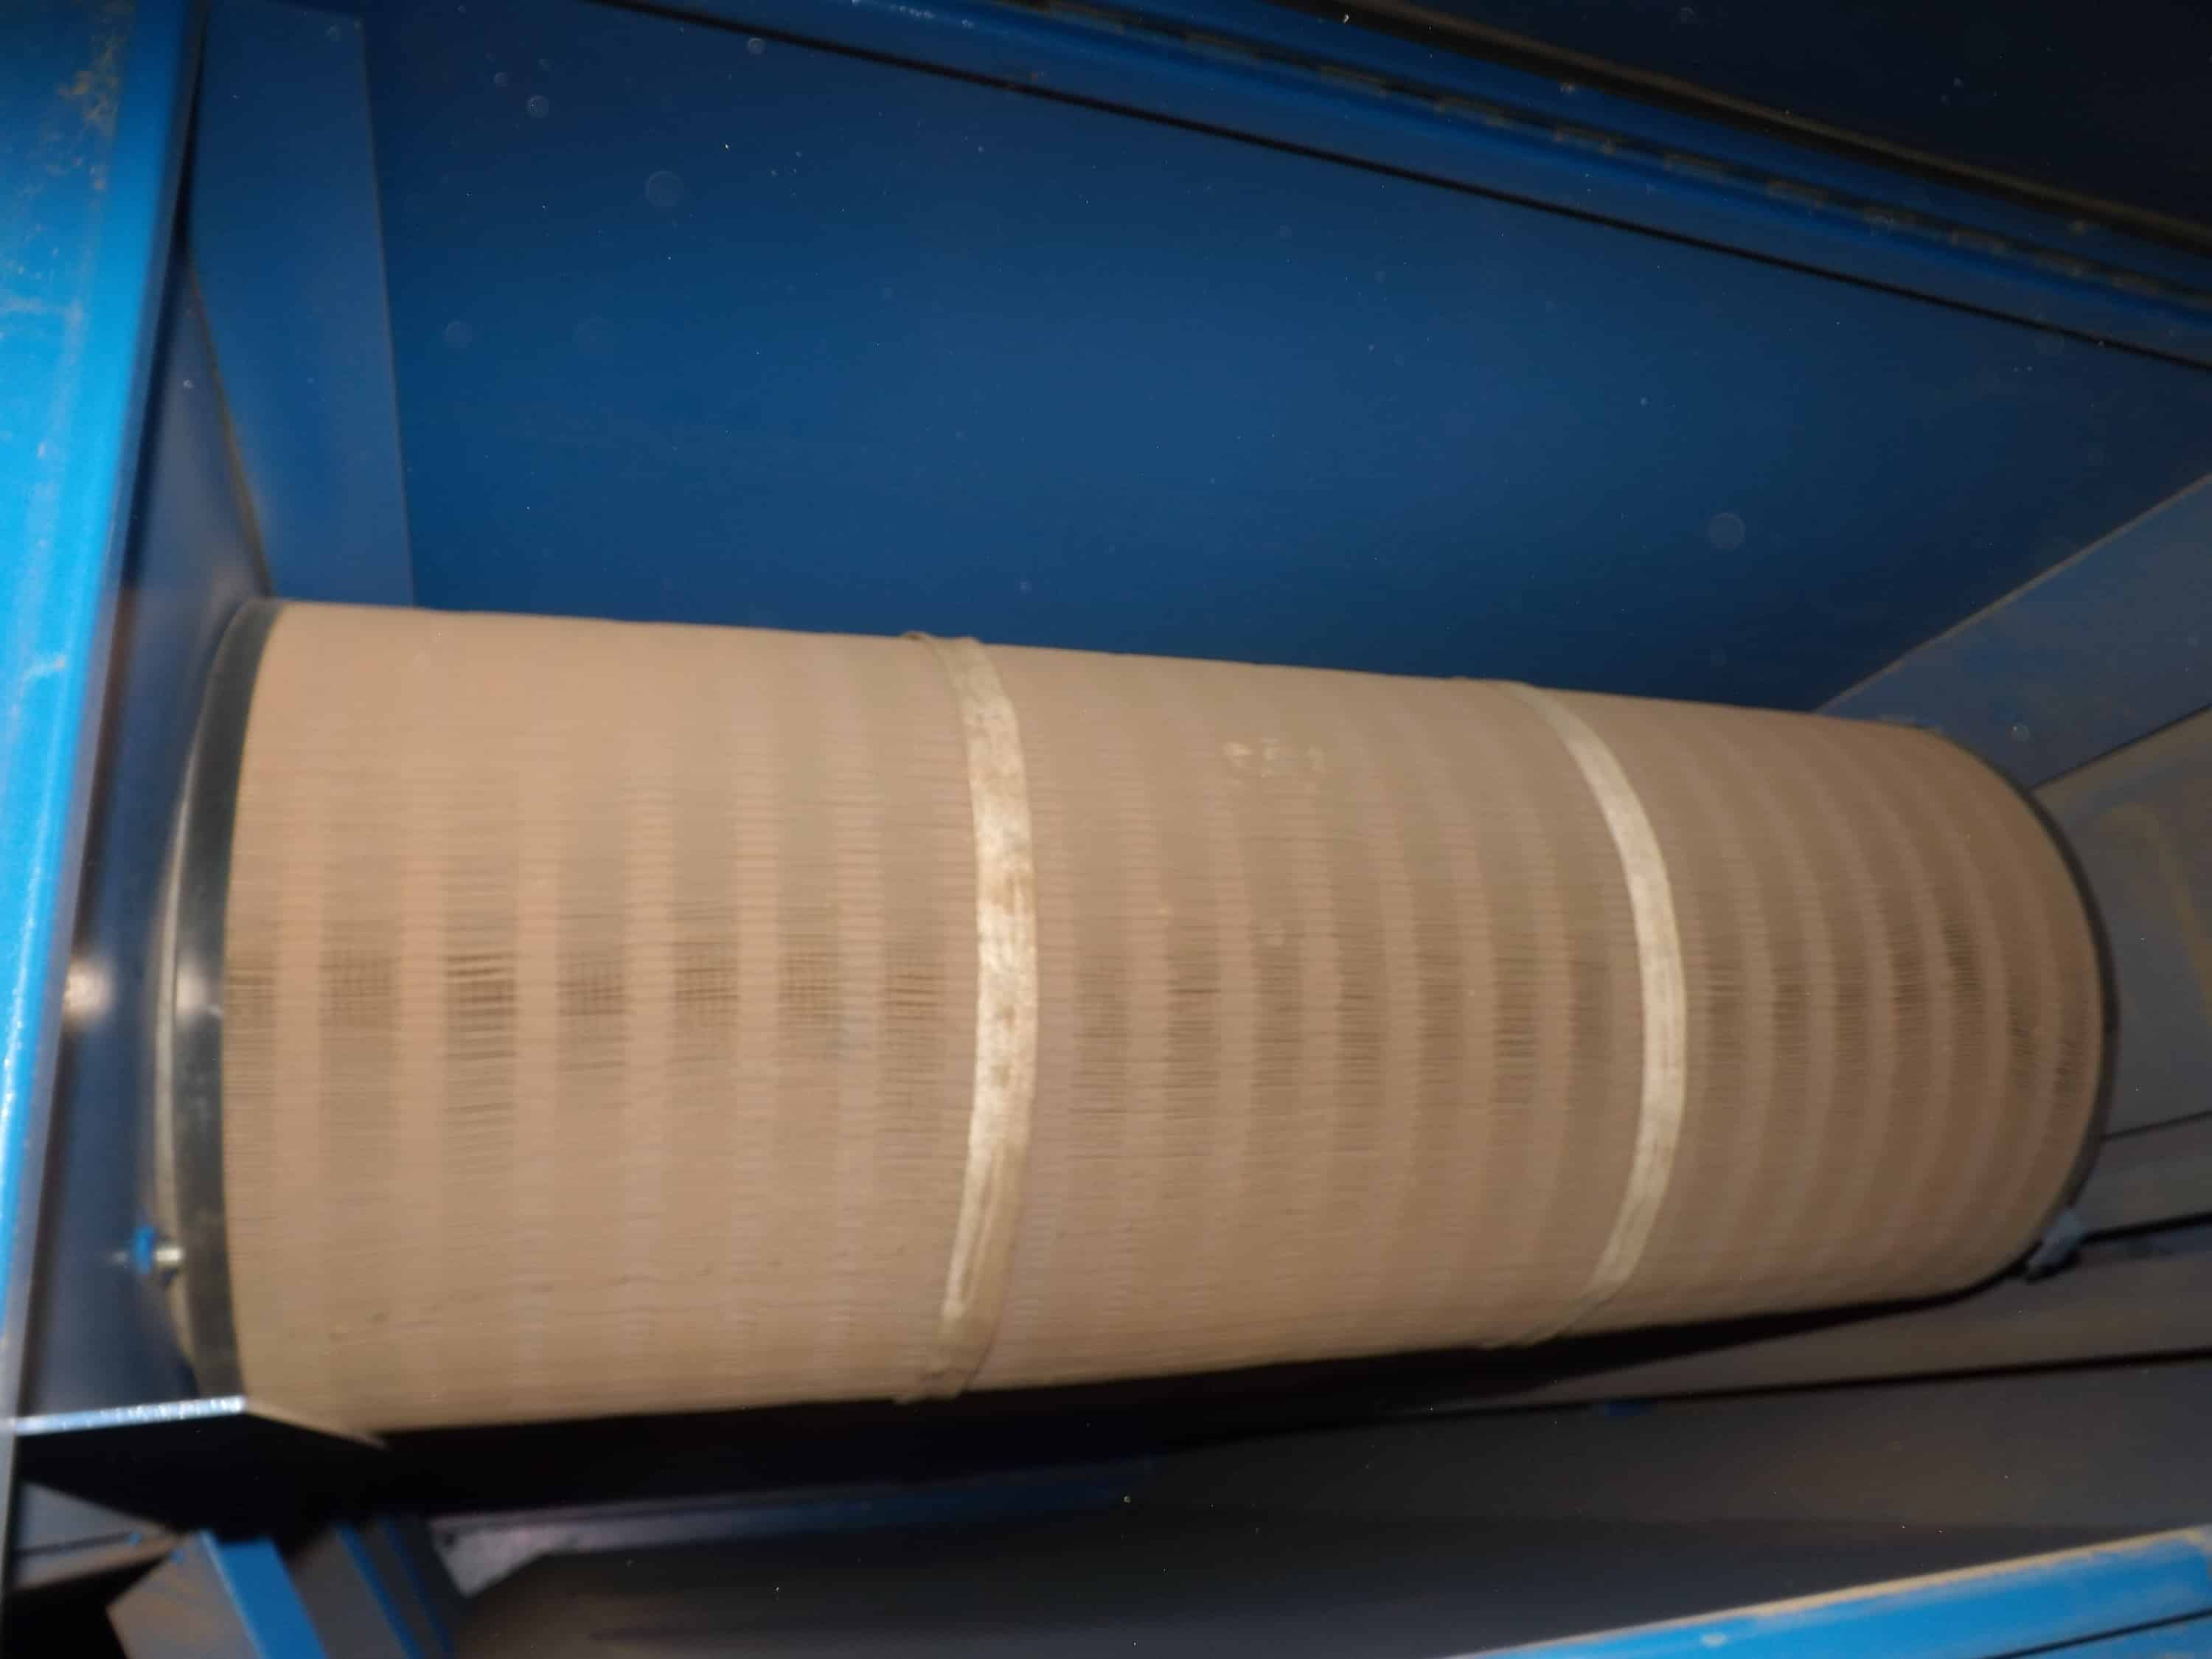 RoboVent Air Filter / Dust Collector, Model DWS-4000-4, S/N 20622, 7-1/2 HP, 3 Phase 460 Volt (Located in Pittsbugh, PA)***JPI***